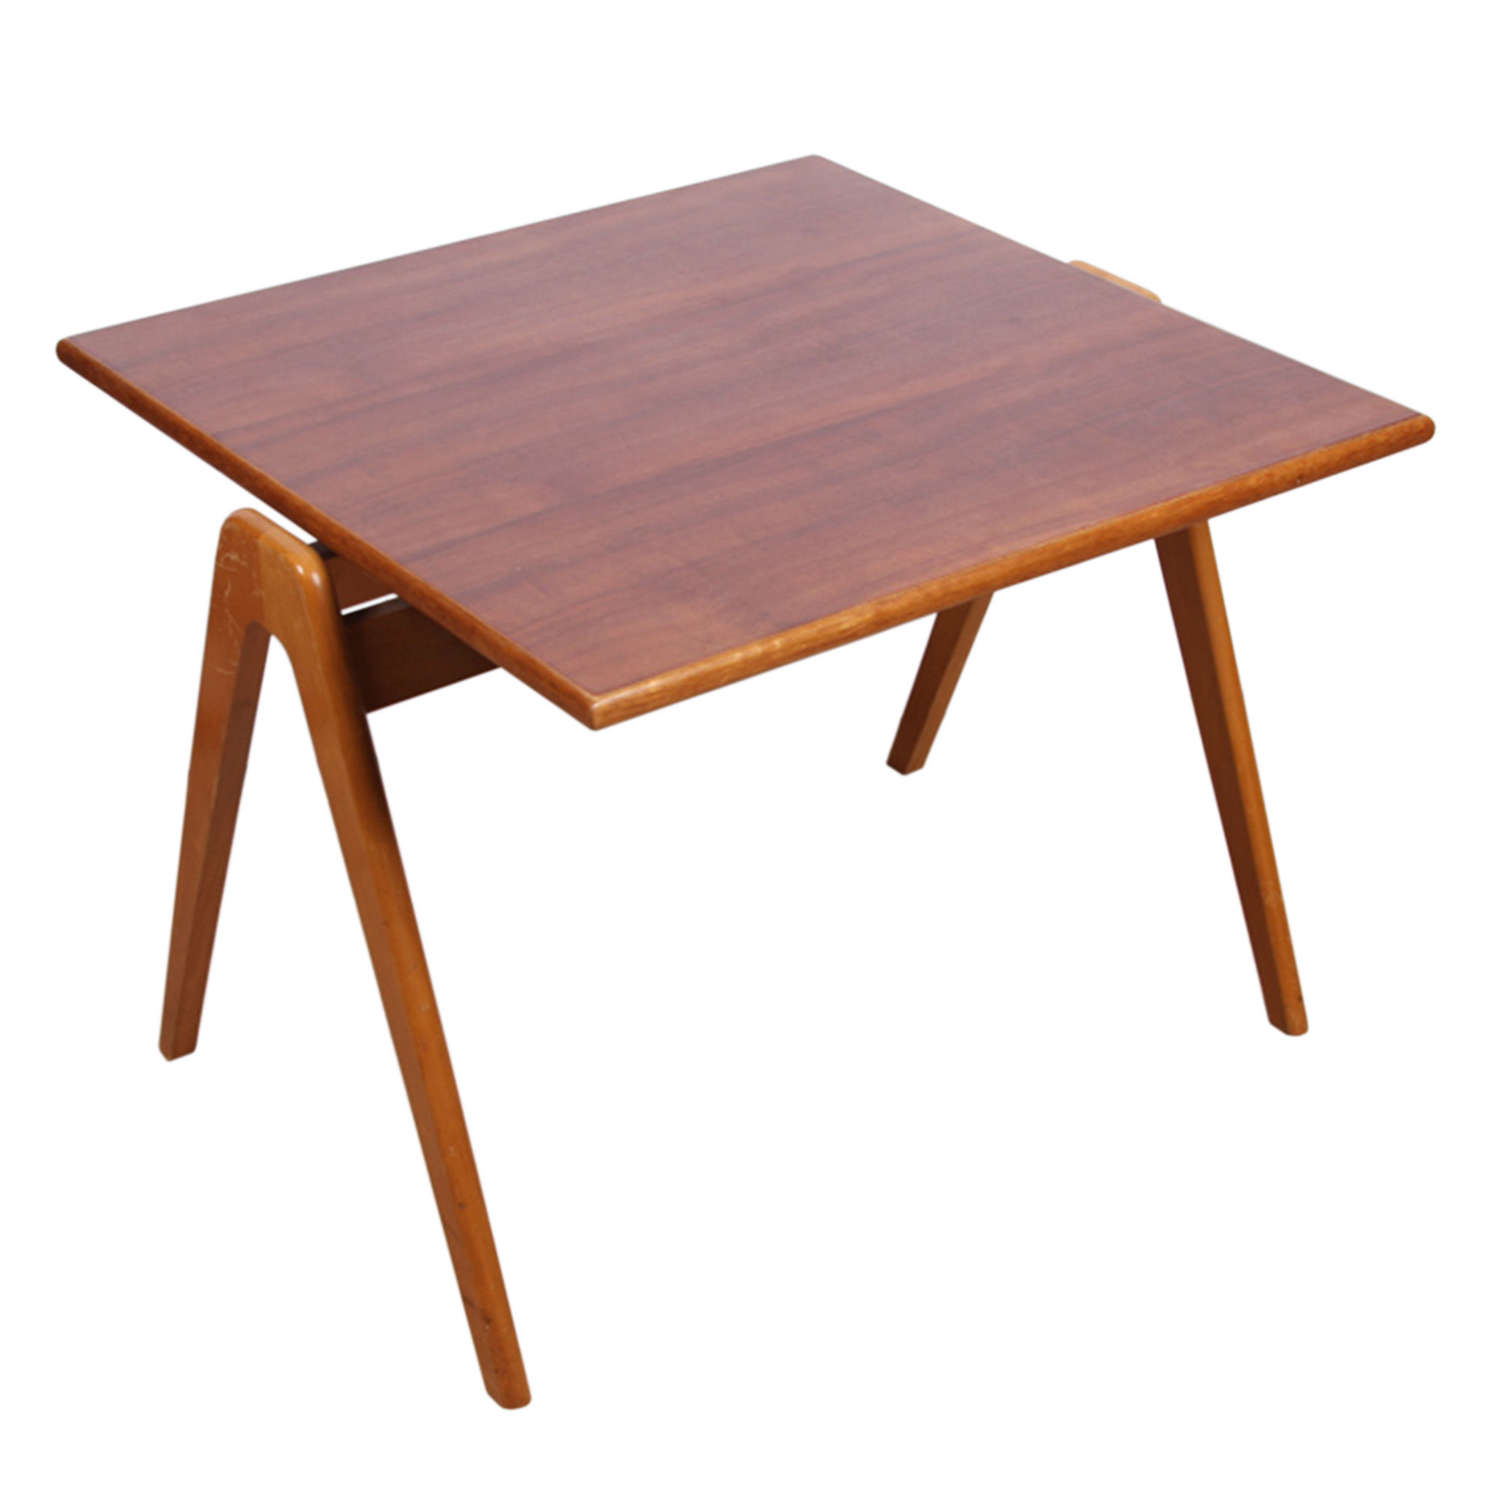 Hillestak Coffee Table, designed by Robin Day for Hille of London